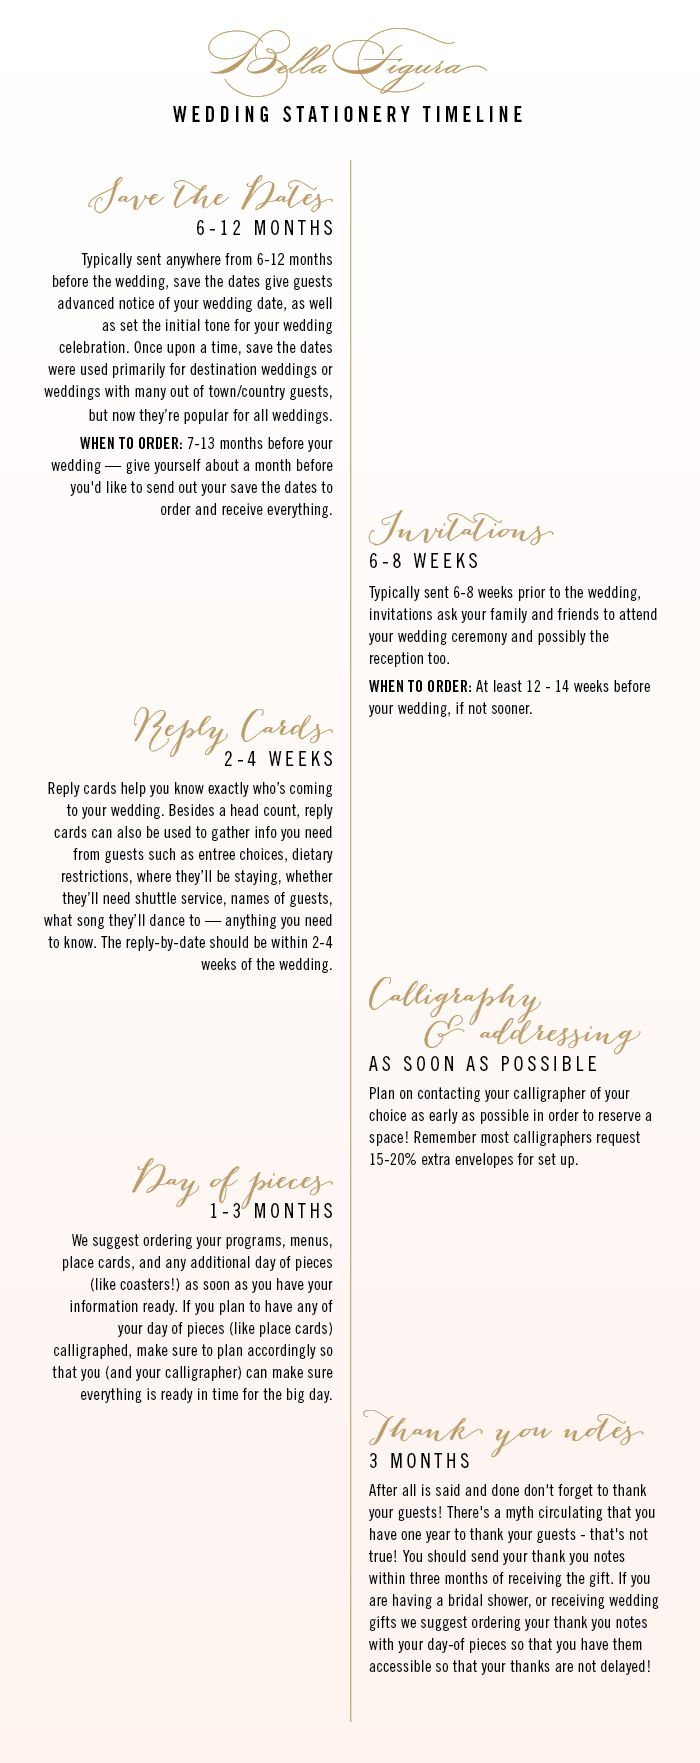 233 best images about Wedding Stationary on Pinterest